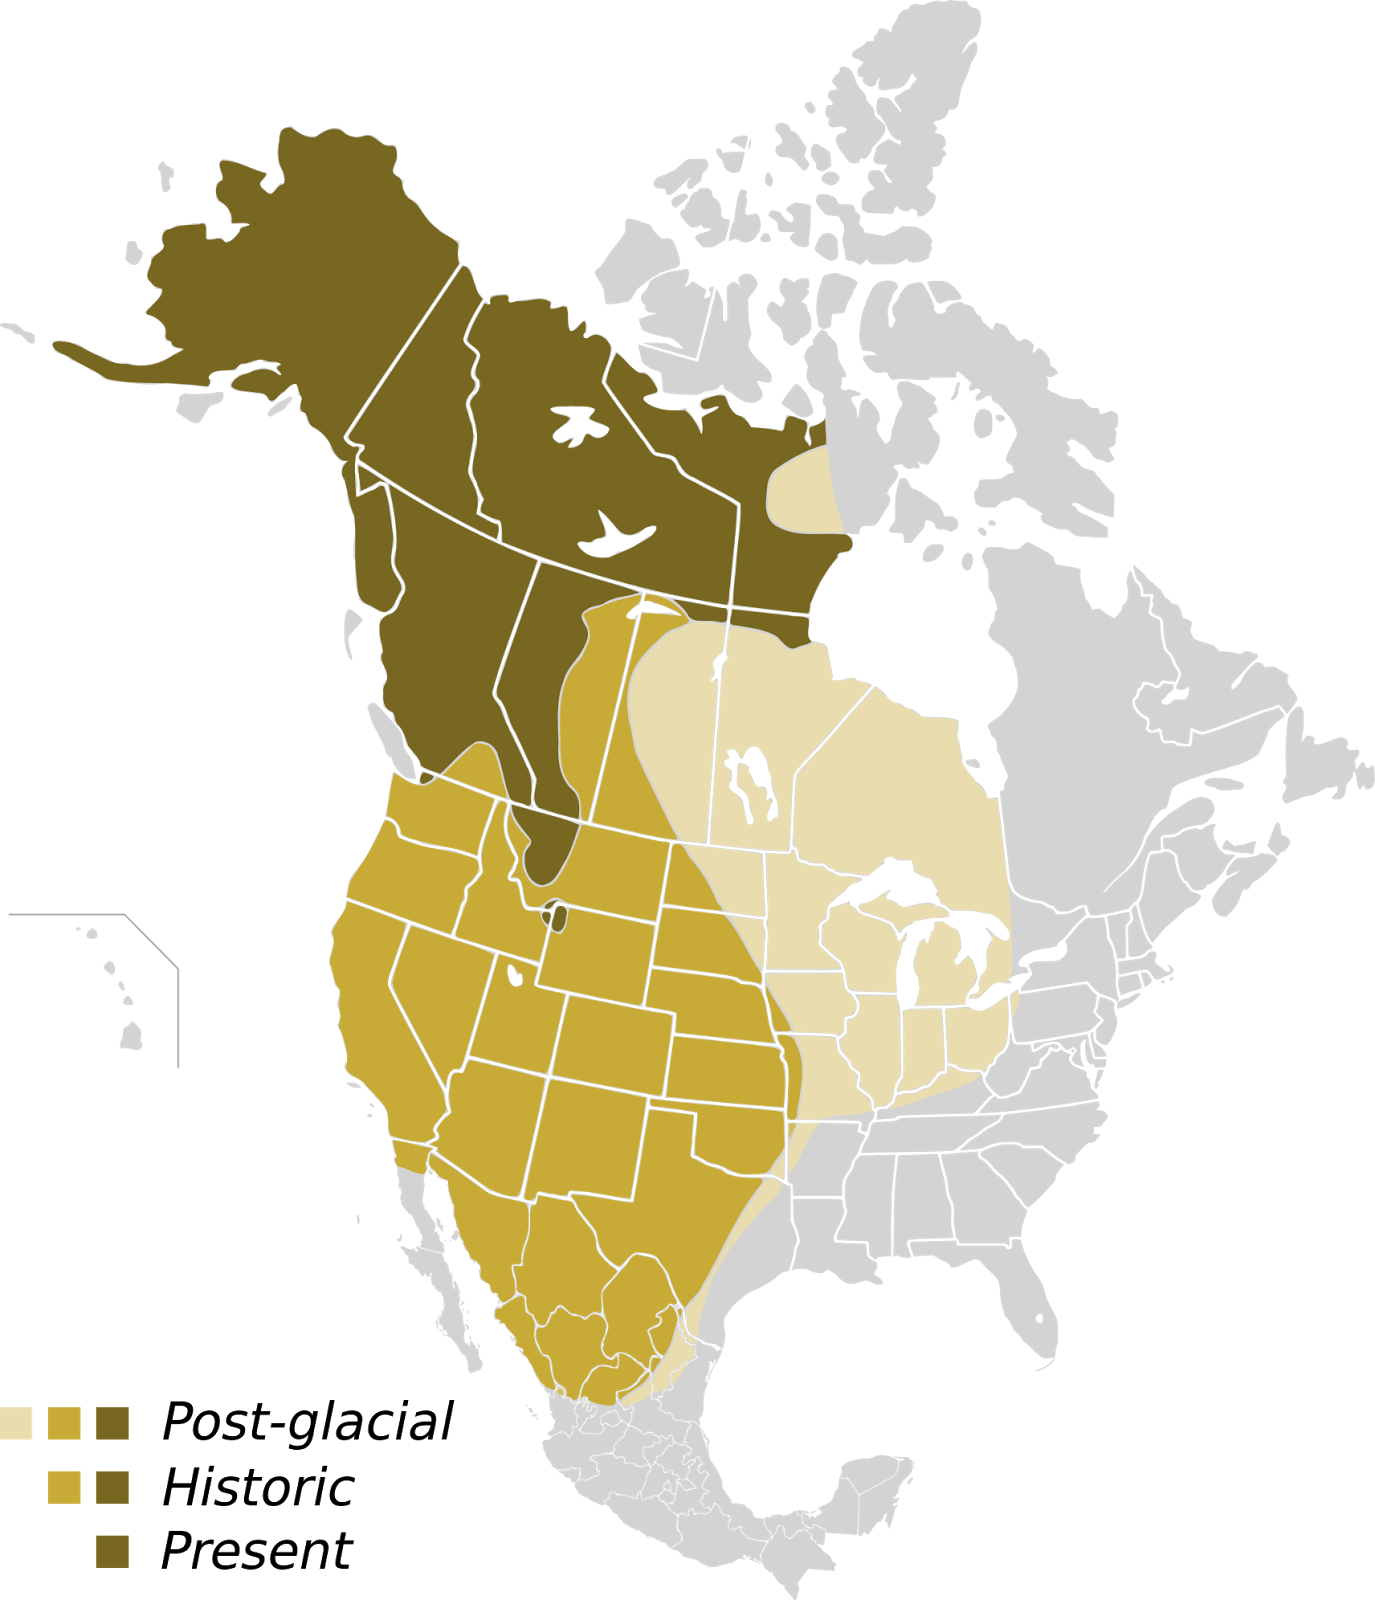 Historic and Present range of the Grizzly Bear